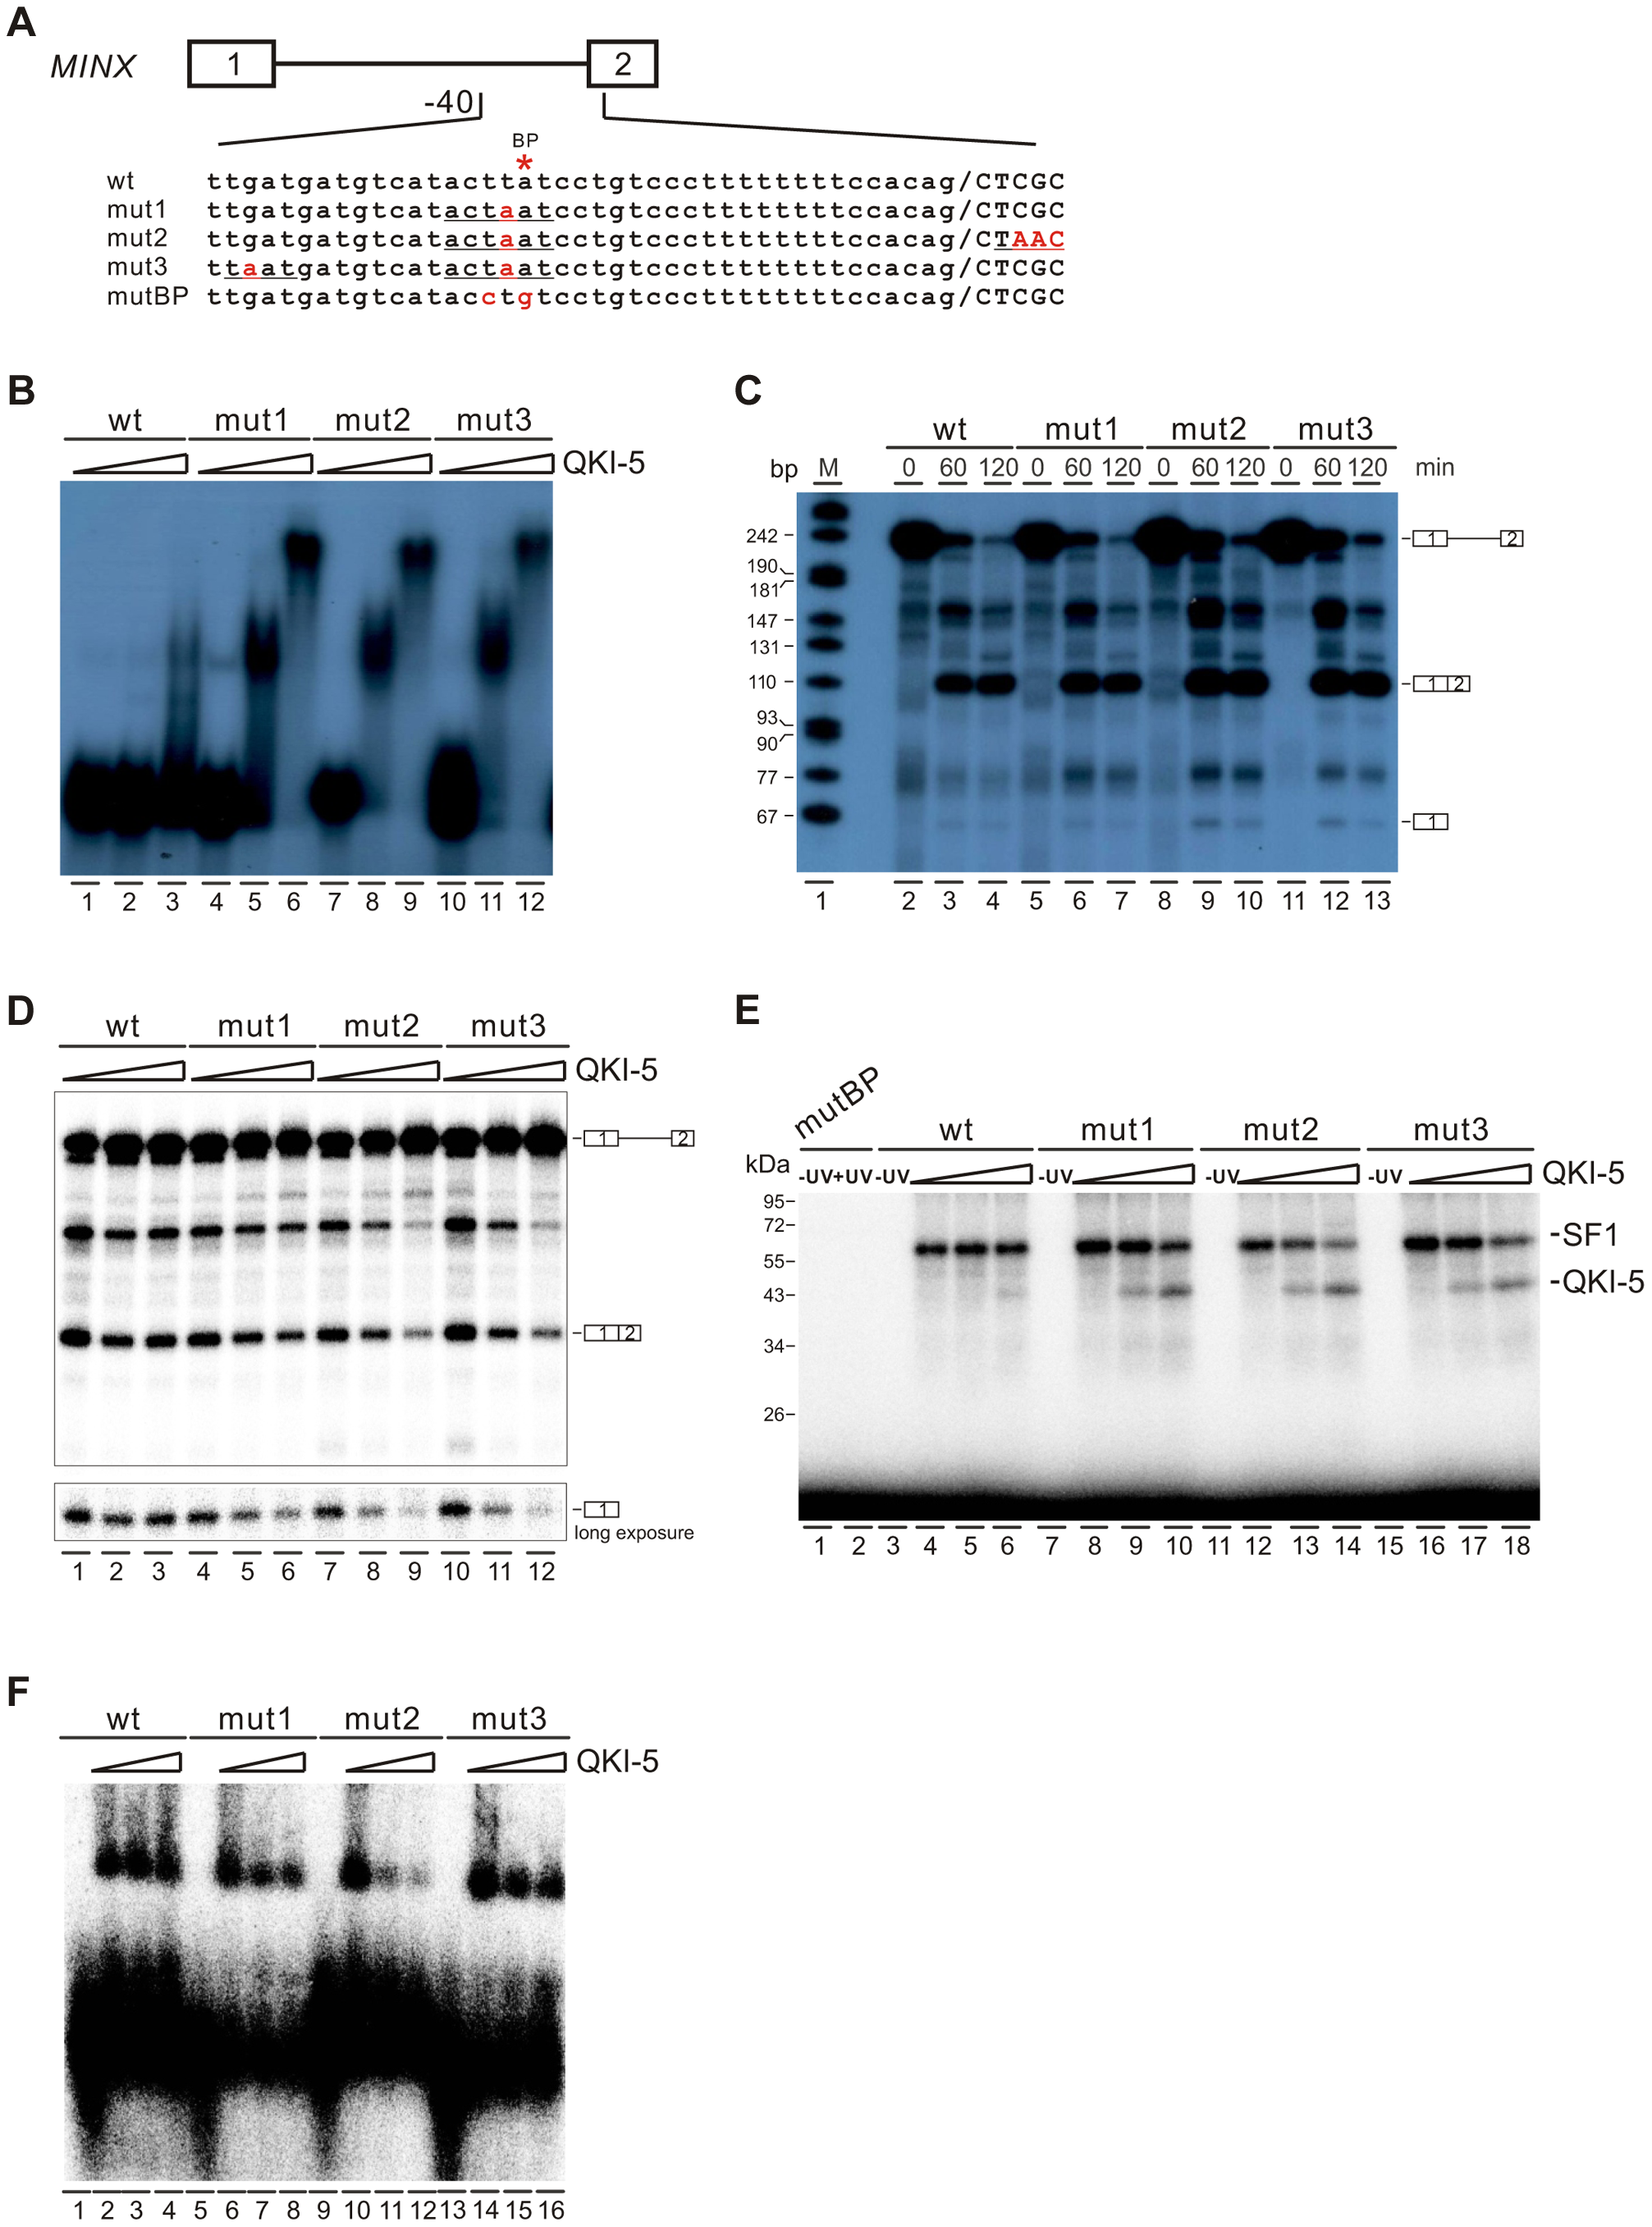 QKI-5 represses splicing by selectively competing with SF1.